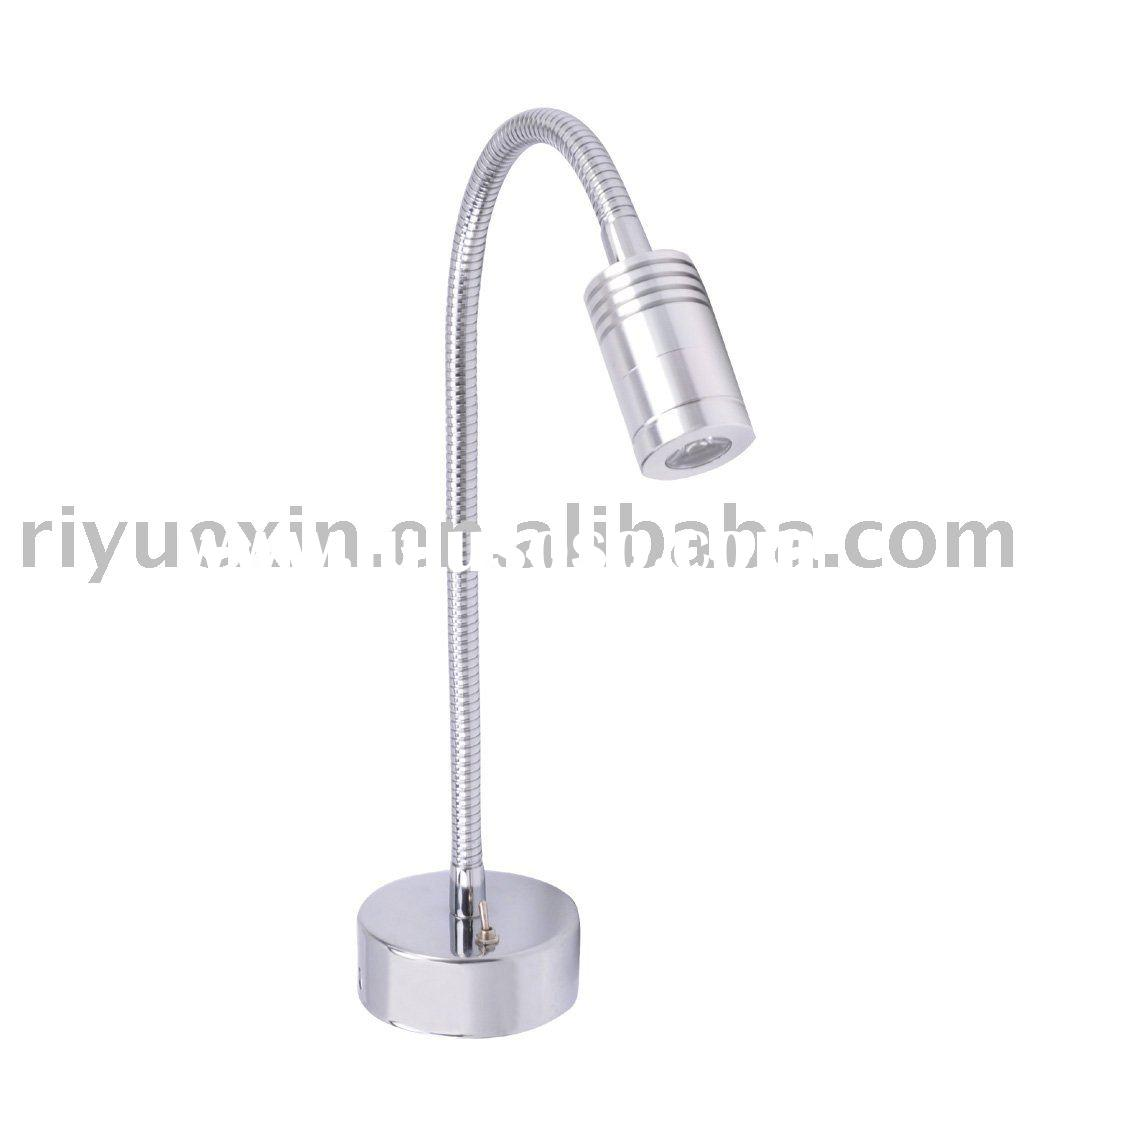 eye-protected and portable LED table lamp/ led reading lamp/ led bed lighting